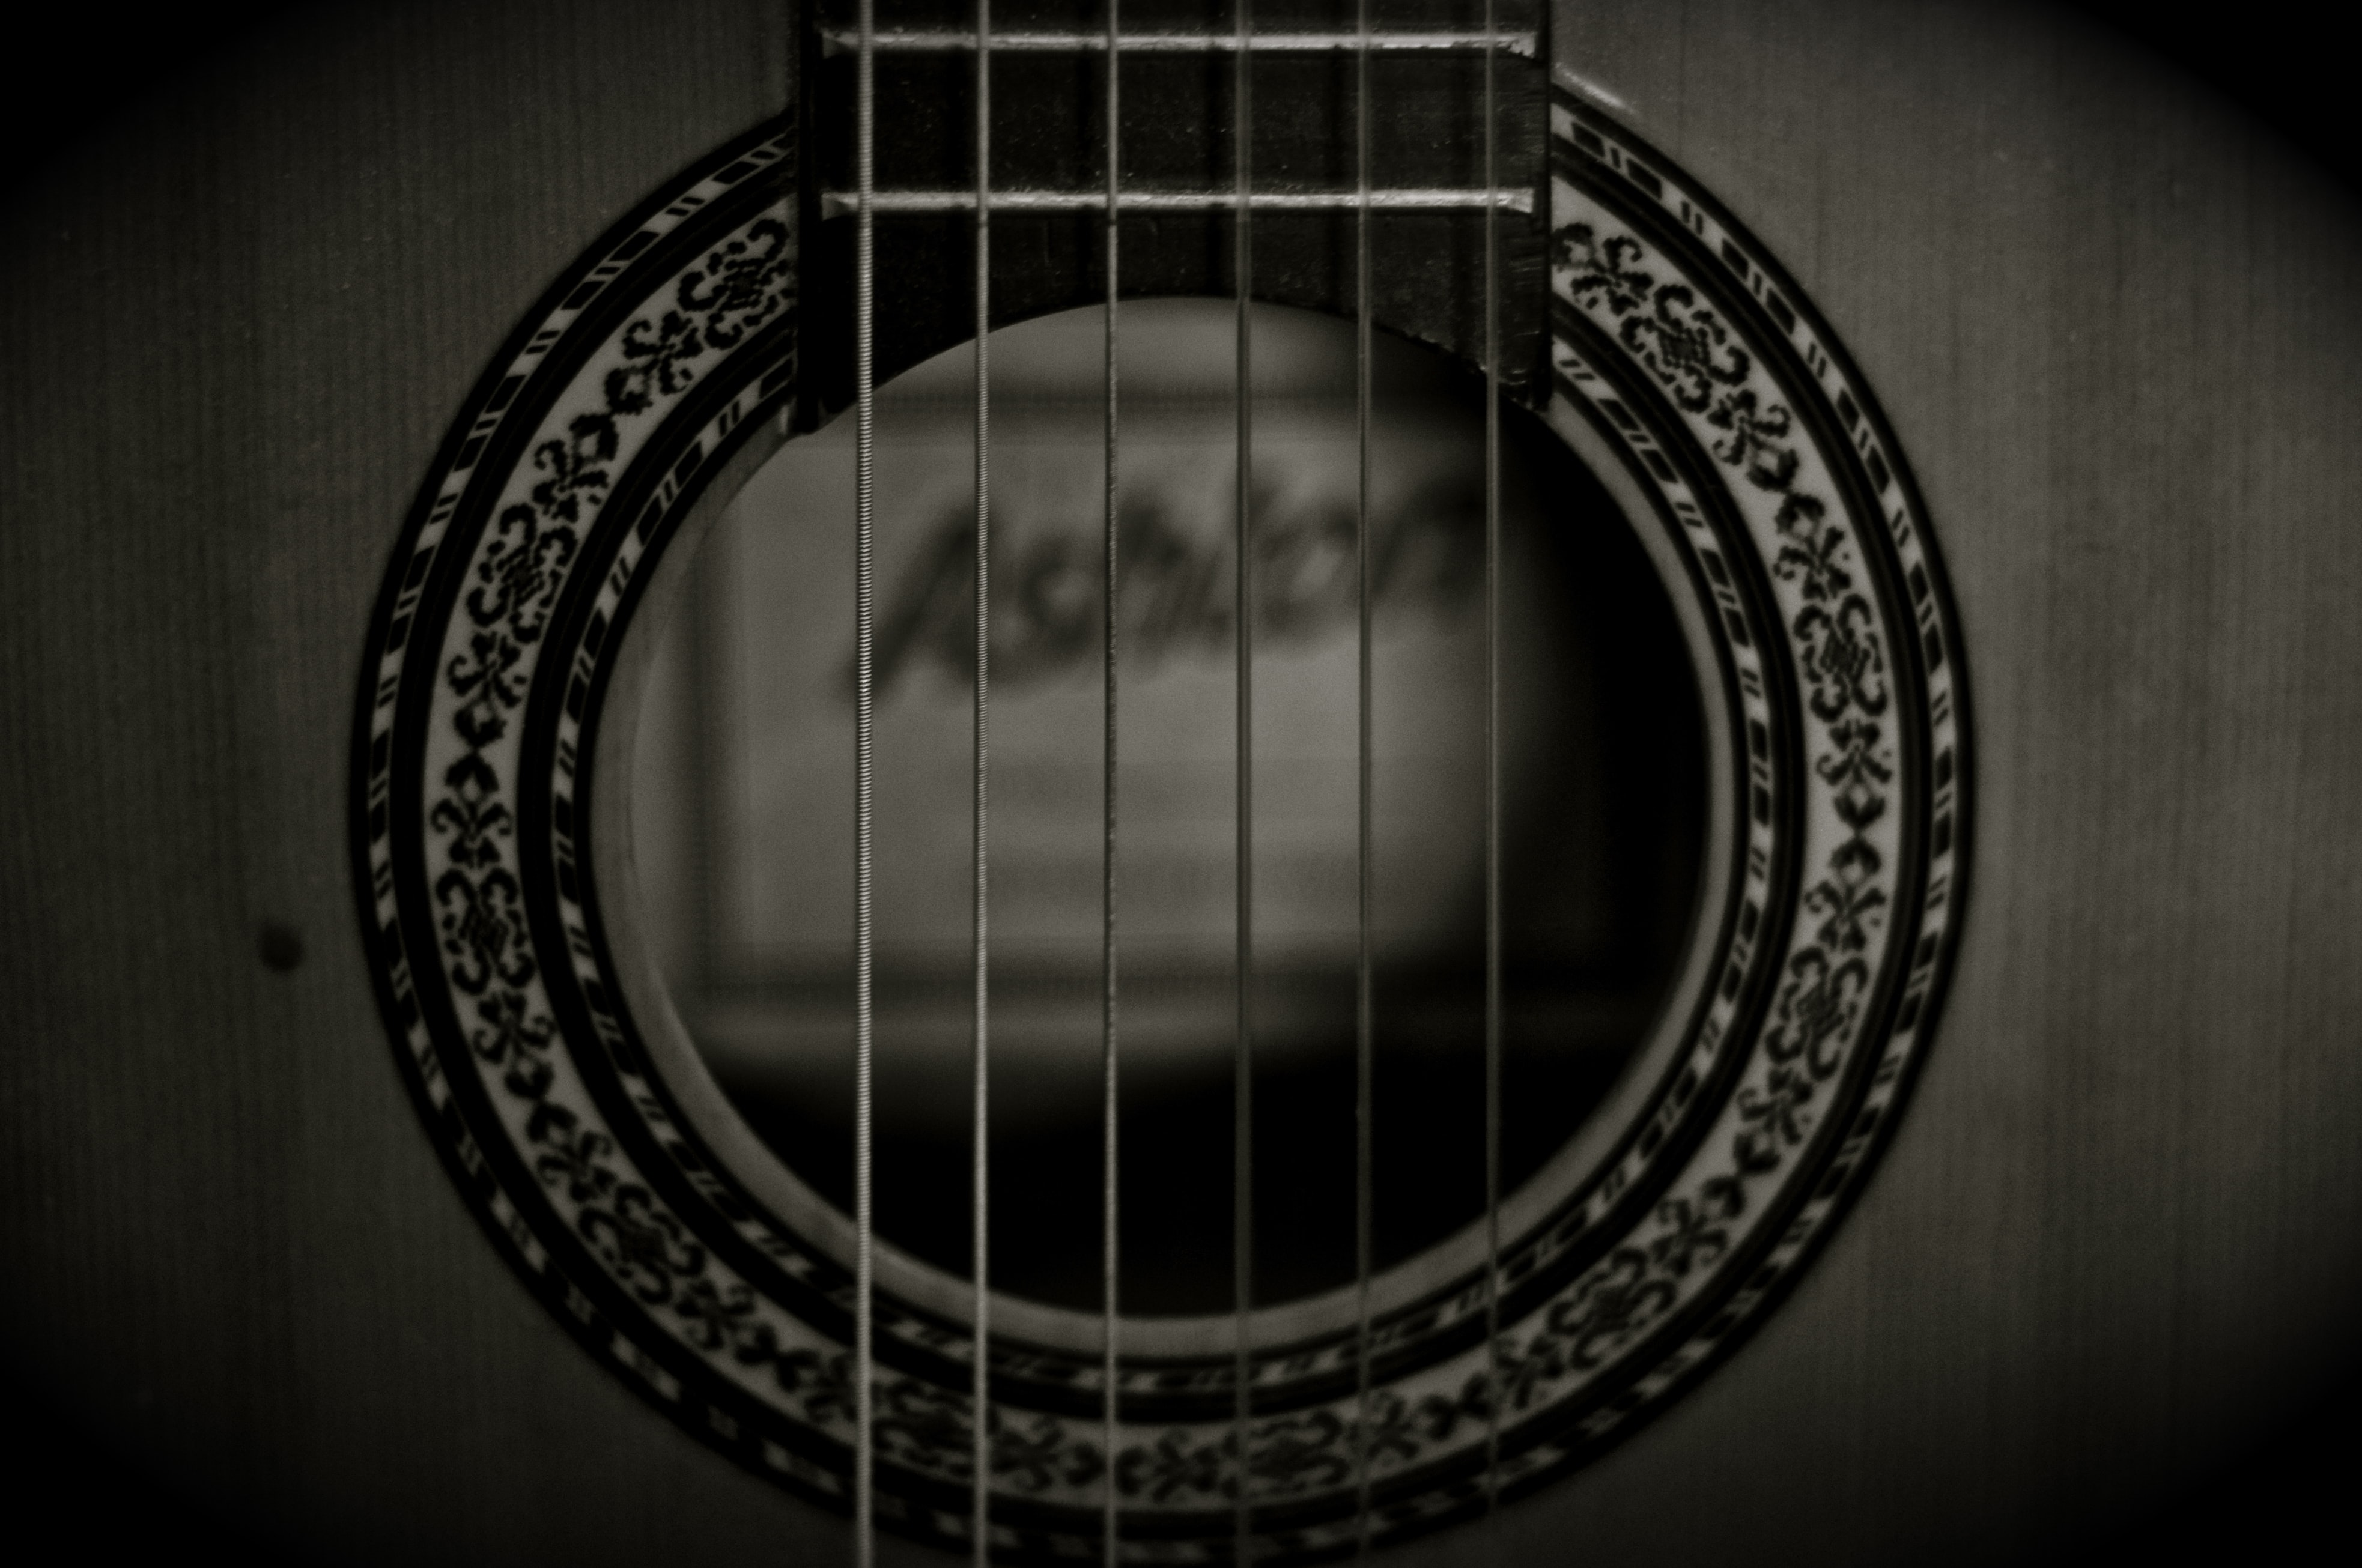 photo of grayscale guitar strings